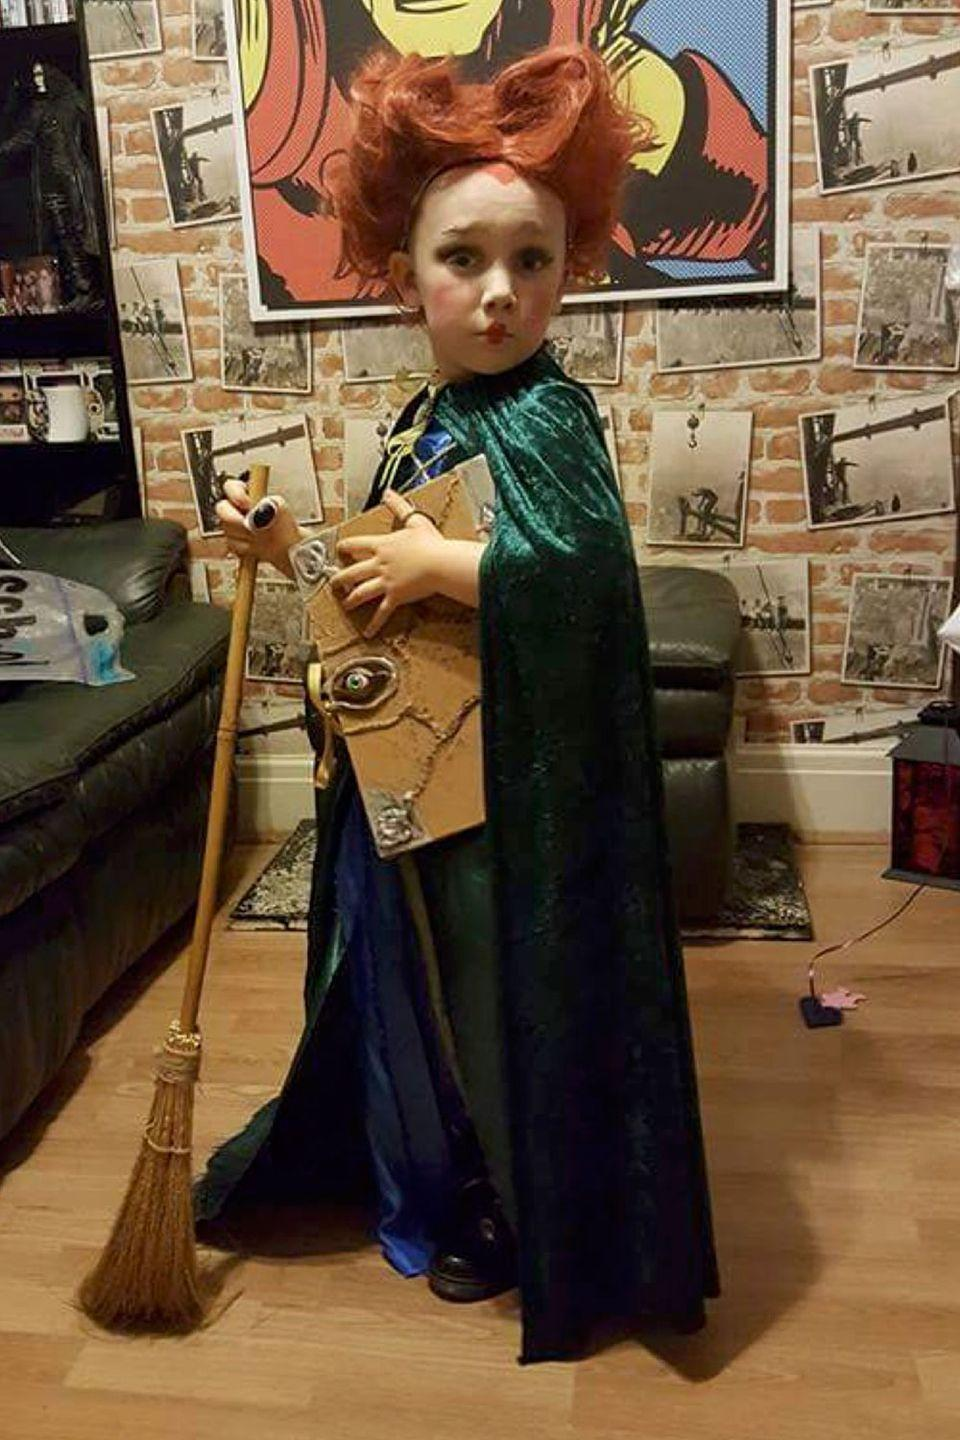 "<p>Did you really think we'd do a Halloween round-up without a <em>Hocus Pocus</em> costume? </p><p><strong>RELATED: </strong><a href=""https://www.goodhousekeeping.com/holidays/halloween-ideas/g28101282/hocus-pocus-costumes/"" rel=""nofollow noopener"" target=""_blank"" data-ylk=""slk:11 Best 'Hocus Pocus' Costumes Inspired by the Best Halloween Movie of All Time"" class=""link rapid-noclick-resp"">11 Best 'Hocus Pocus' Costumes Inspired by the Best Halloween Movie of All Time</a></p>"